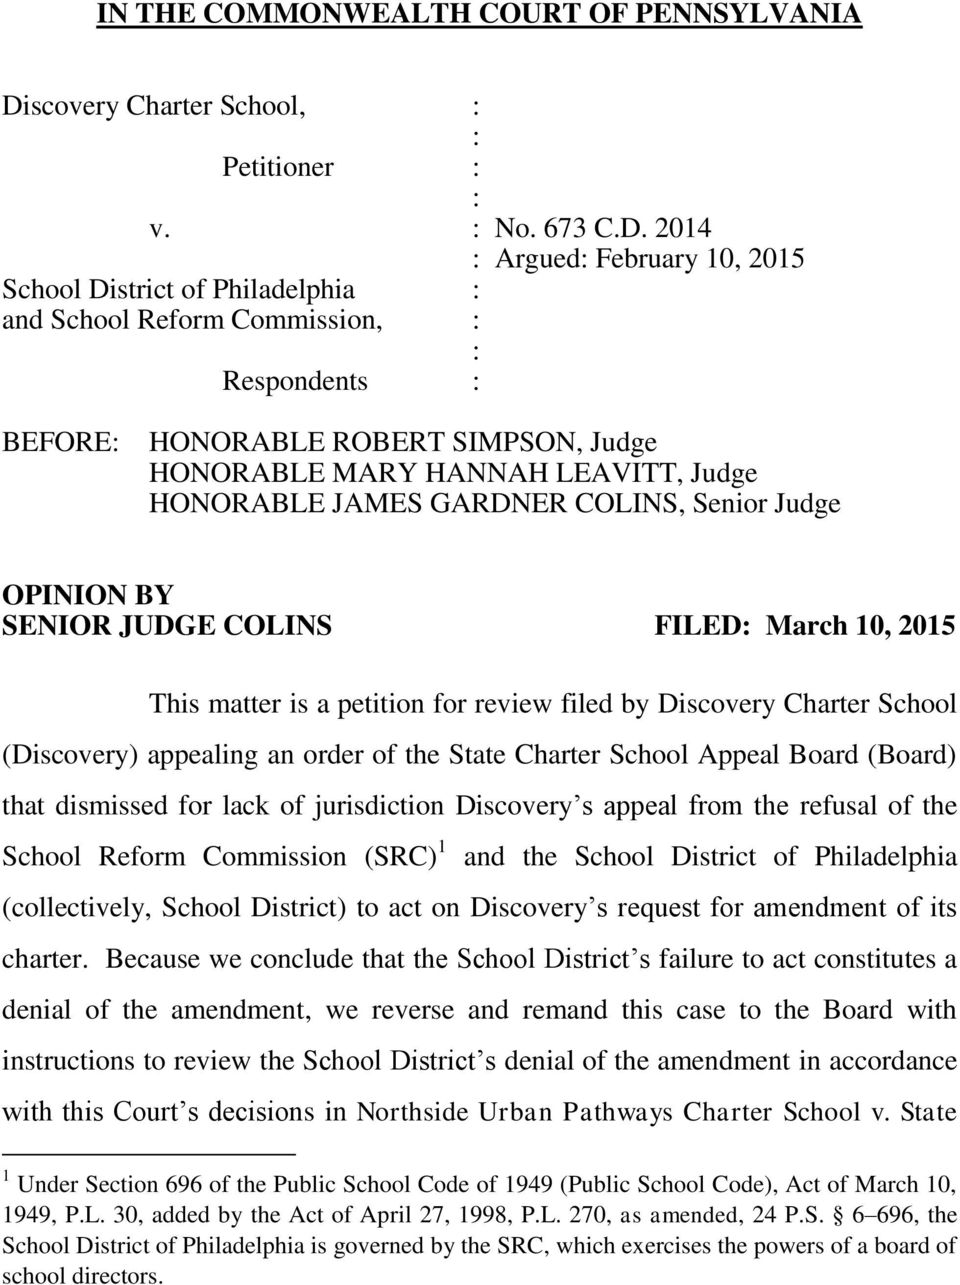 2014 Argued February 10, 2015 School District of Philadelphia and School Reform Commission, Respondents BEFORE HONORABLE ROBERT SIMPSON, Judge HONORABLE MARY HANNAH LEAVITT, Judge HONORABLE JAMES